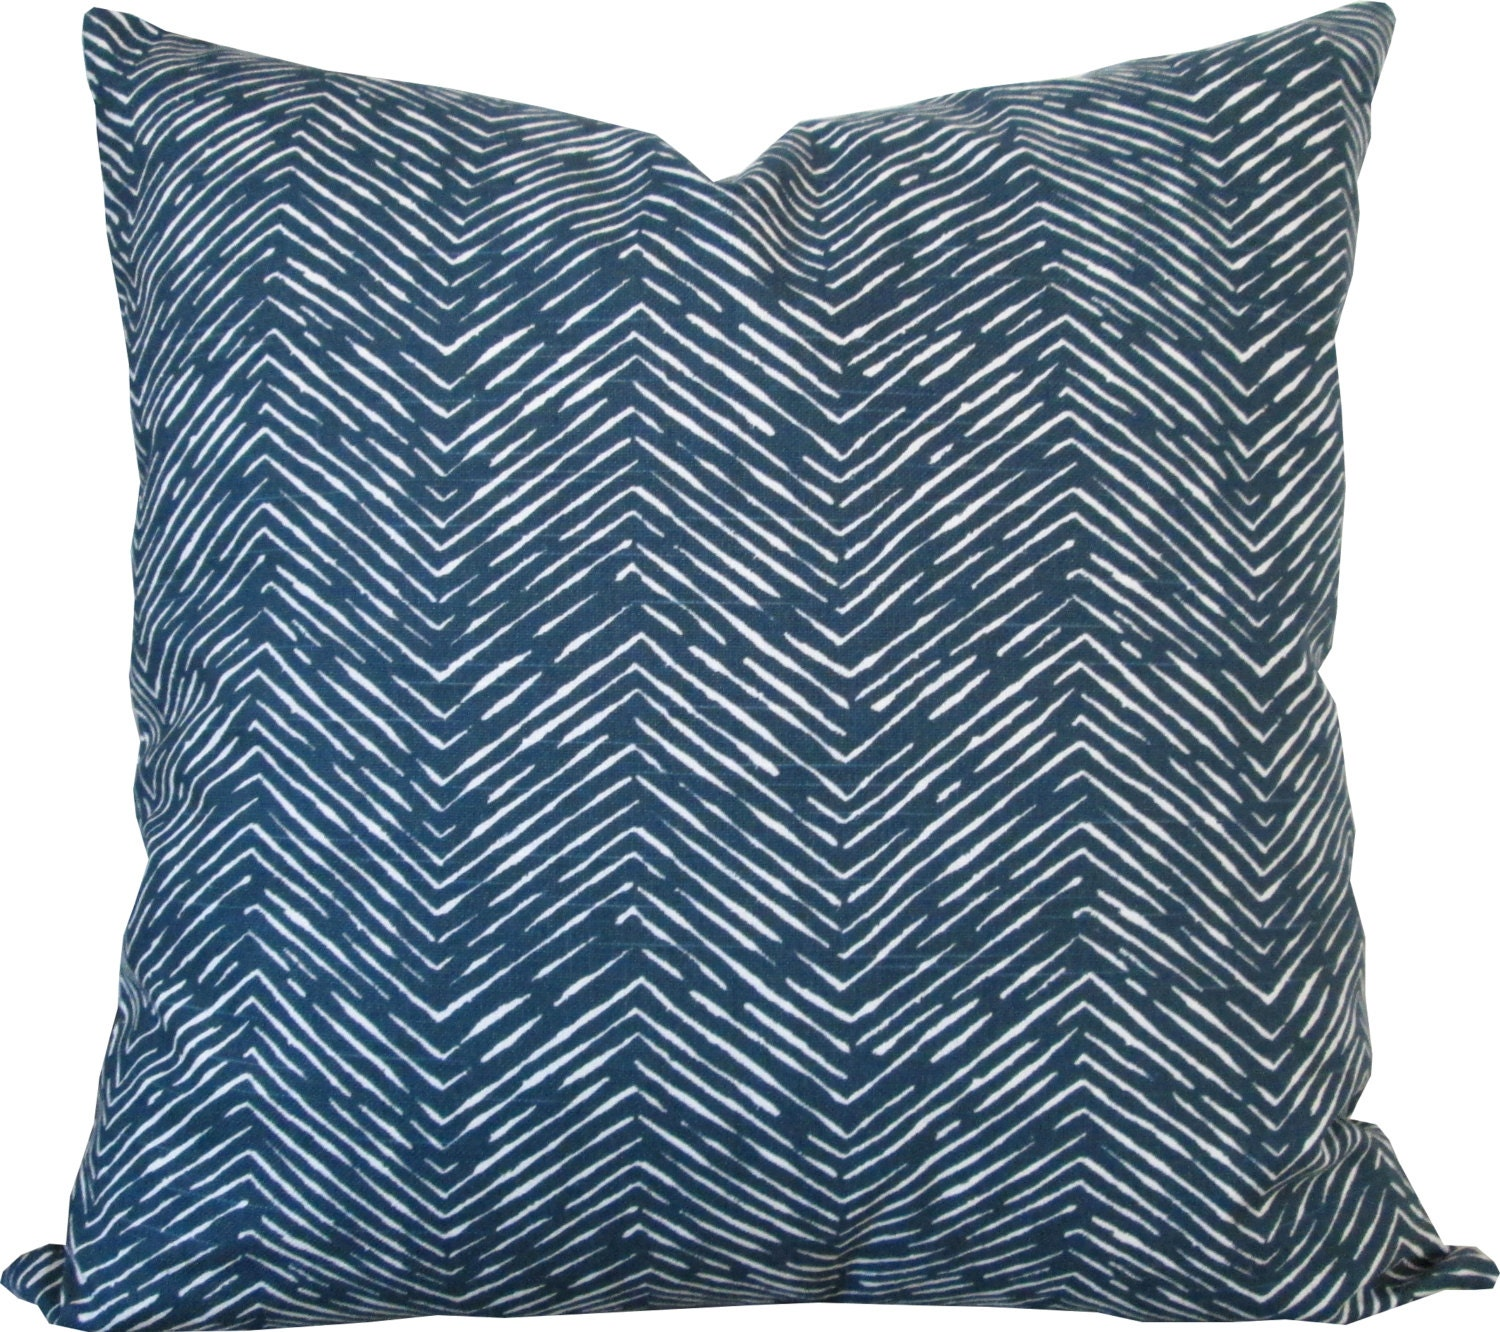 Unique Decorative Accent Pillows : Designer Decorative Pillow Cover-Navy and White Zigzag-Accent